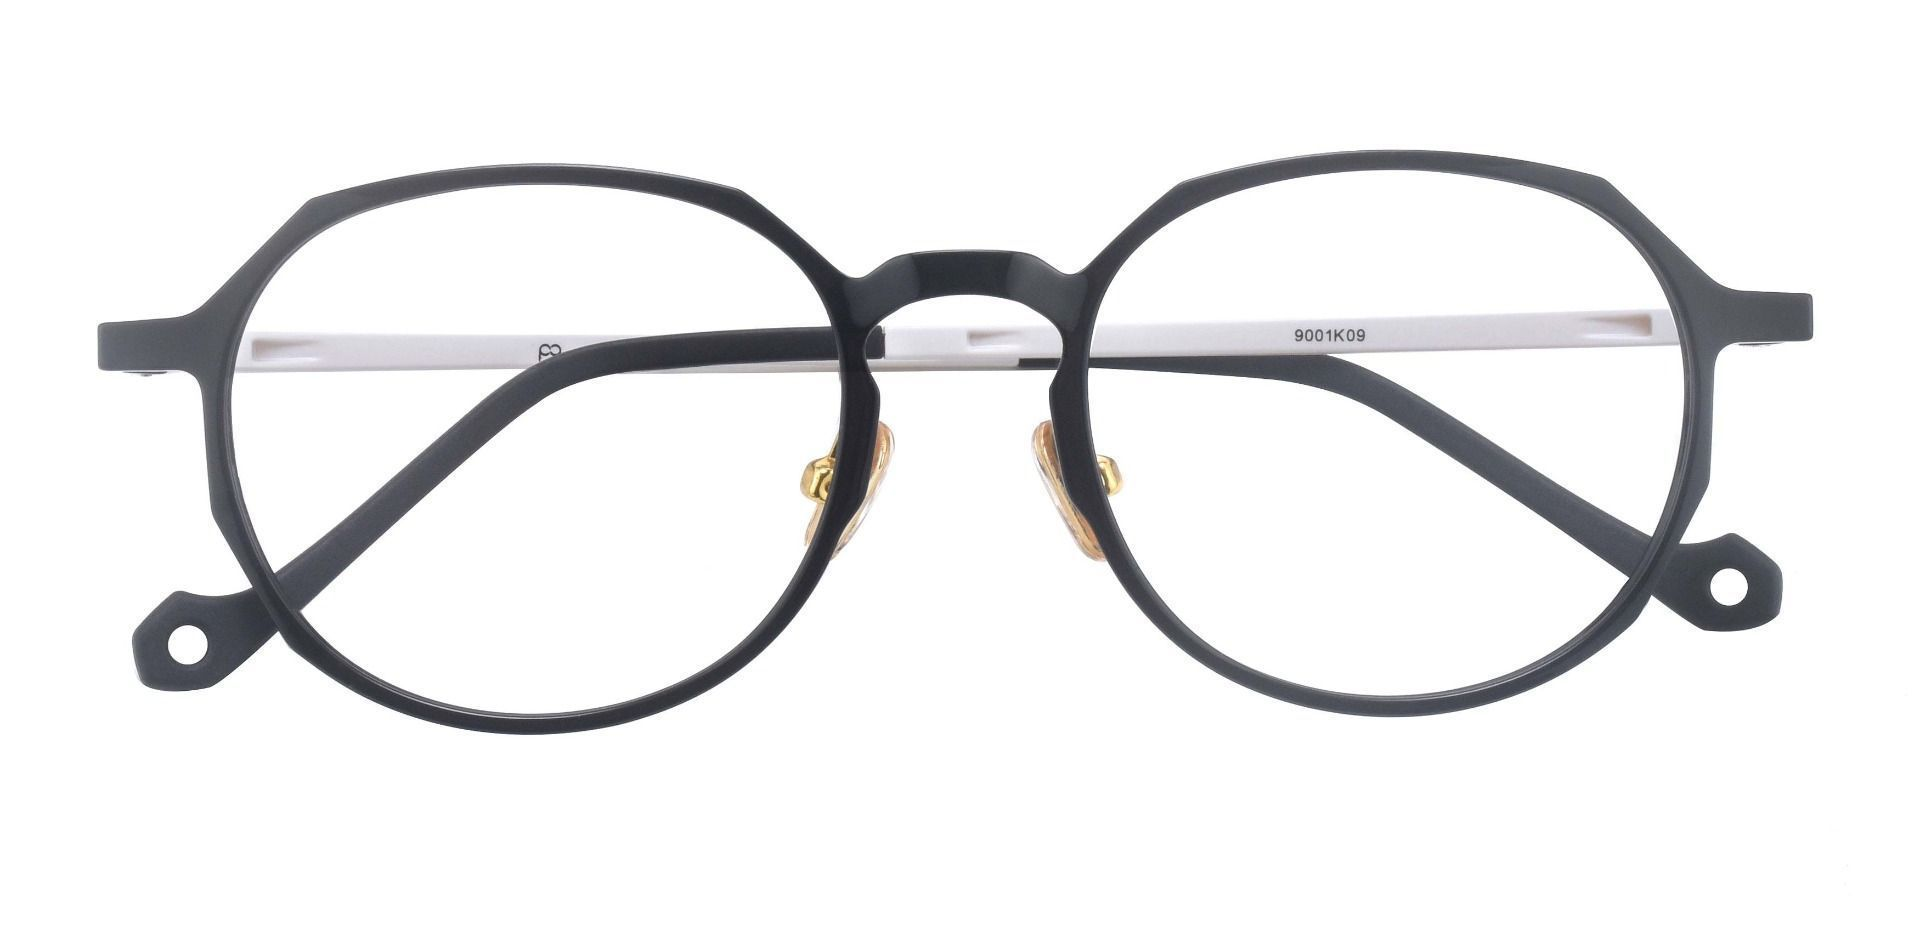 Everly Geometric Prescription Glasses - The Frame Is Black And White